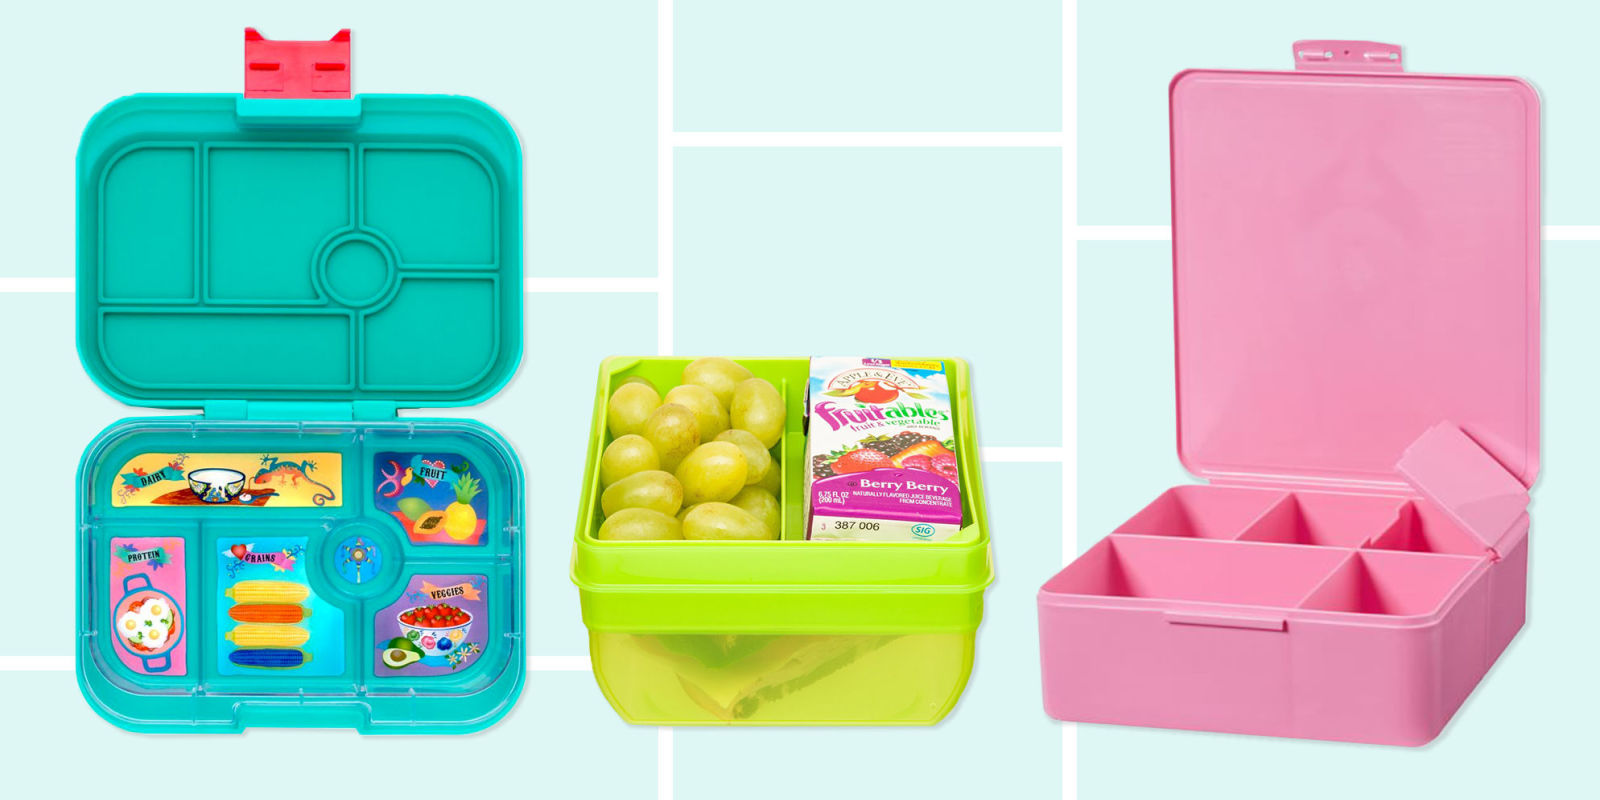 13 best bento boxes for kids in 2018 insulated bento box lunch kits. Black Bedroom Furniture Sets. Home Design Ideas